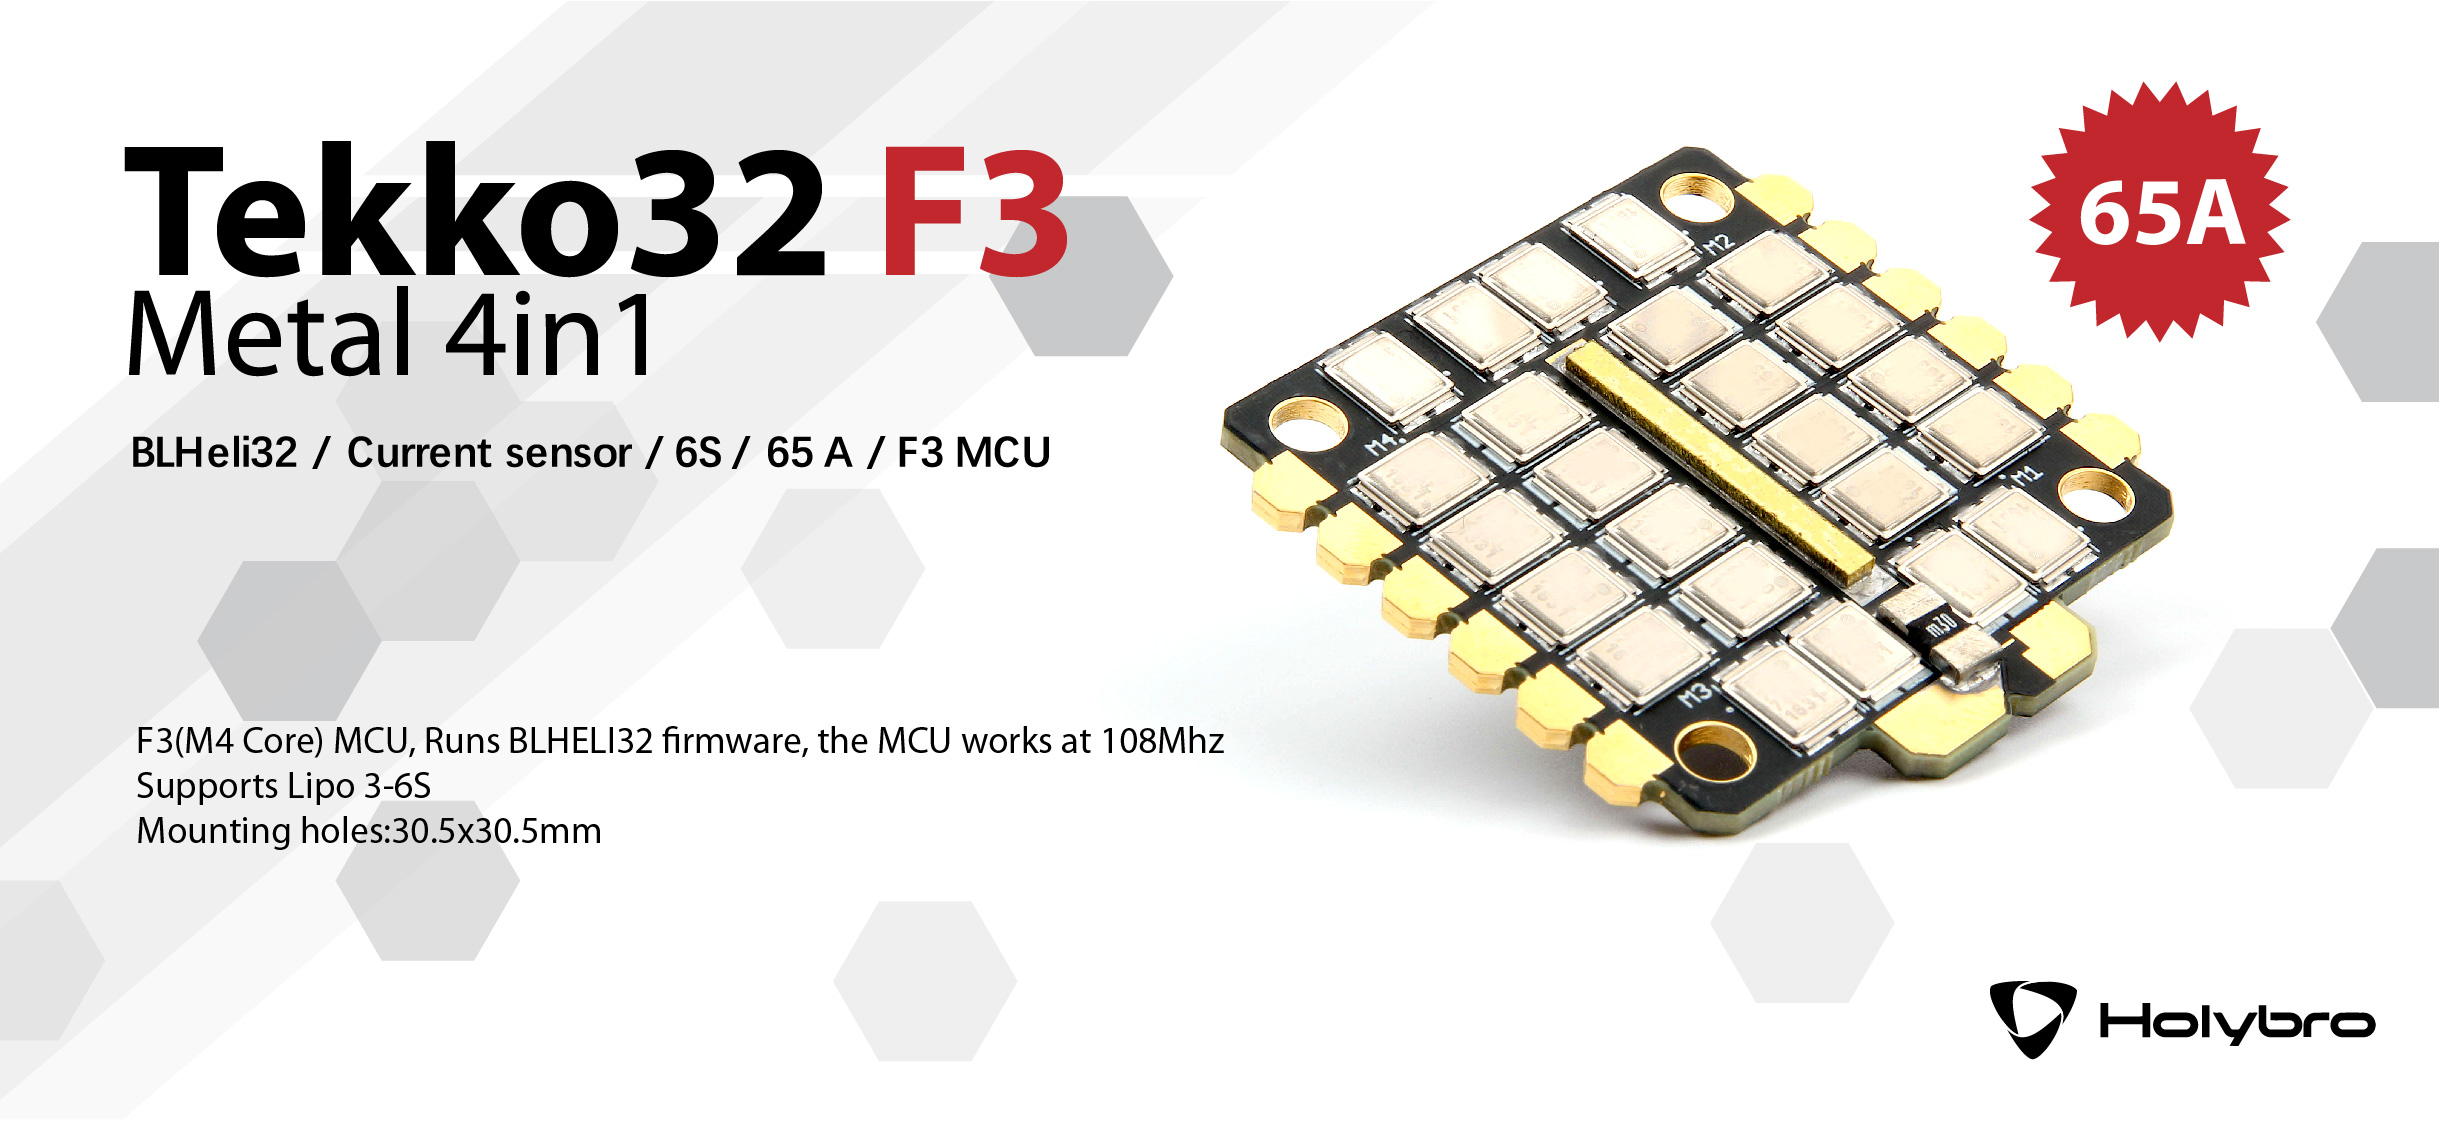 Tekko32 F3 Metal 4in1